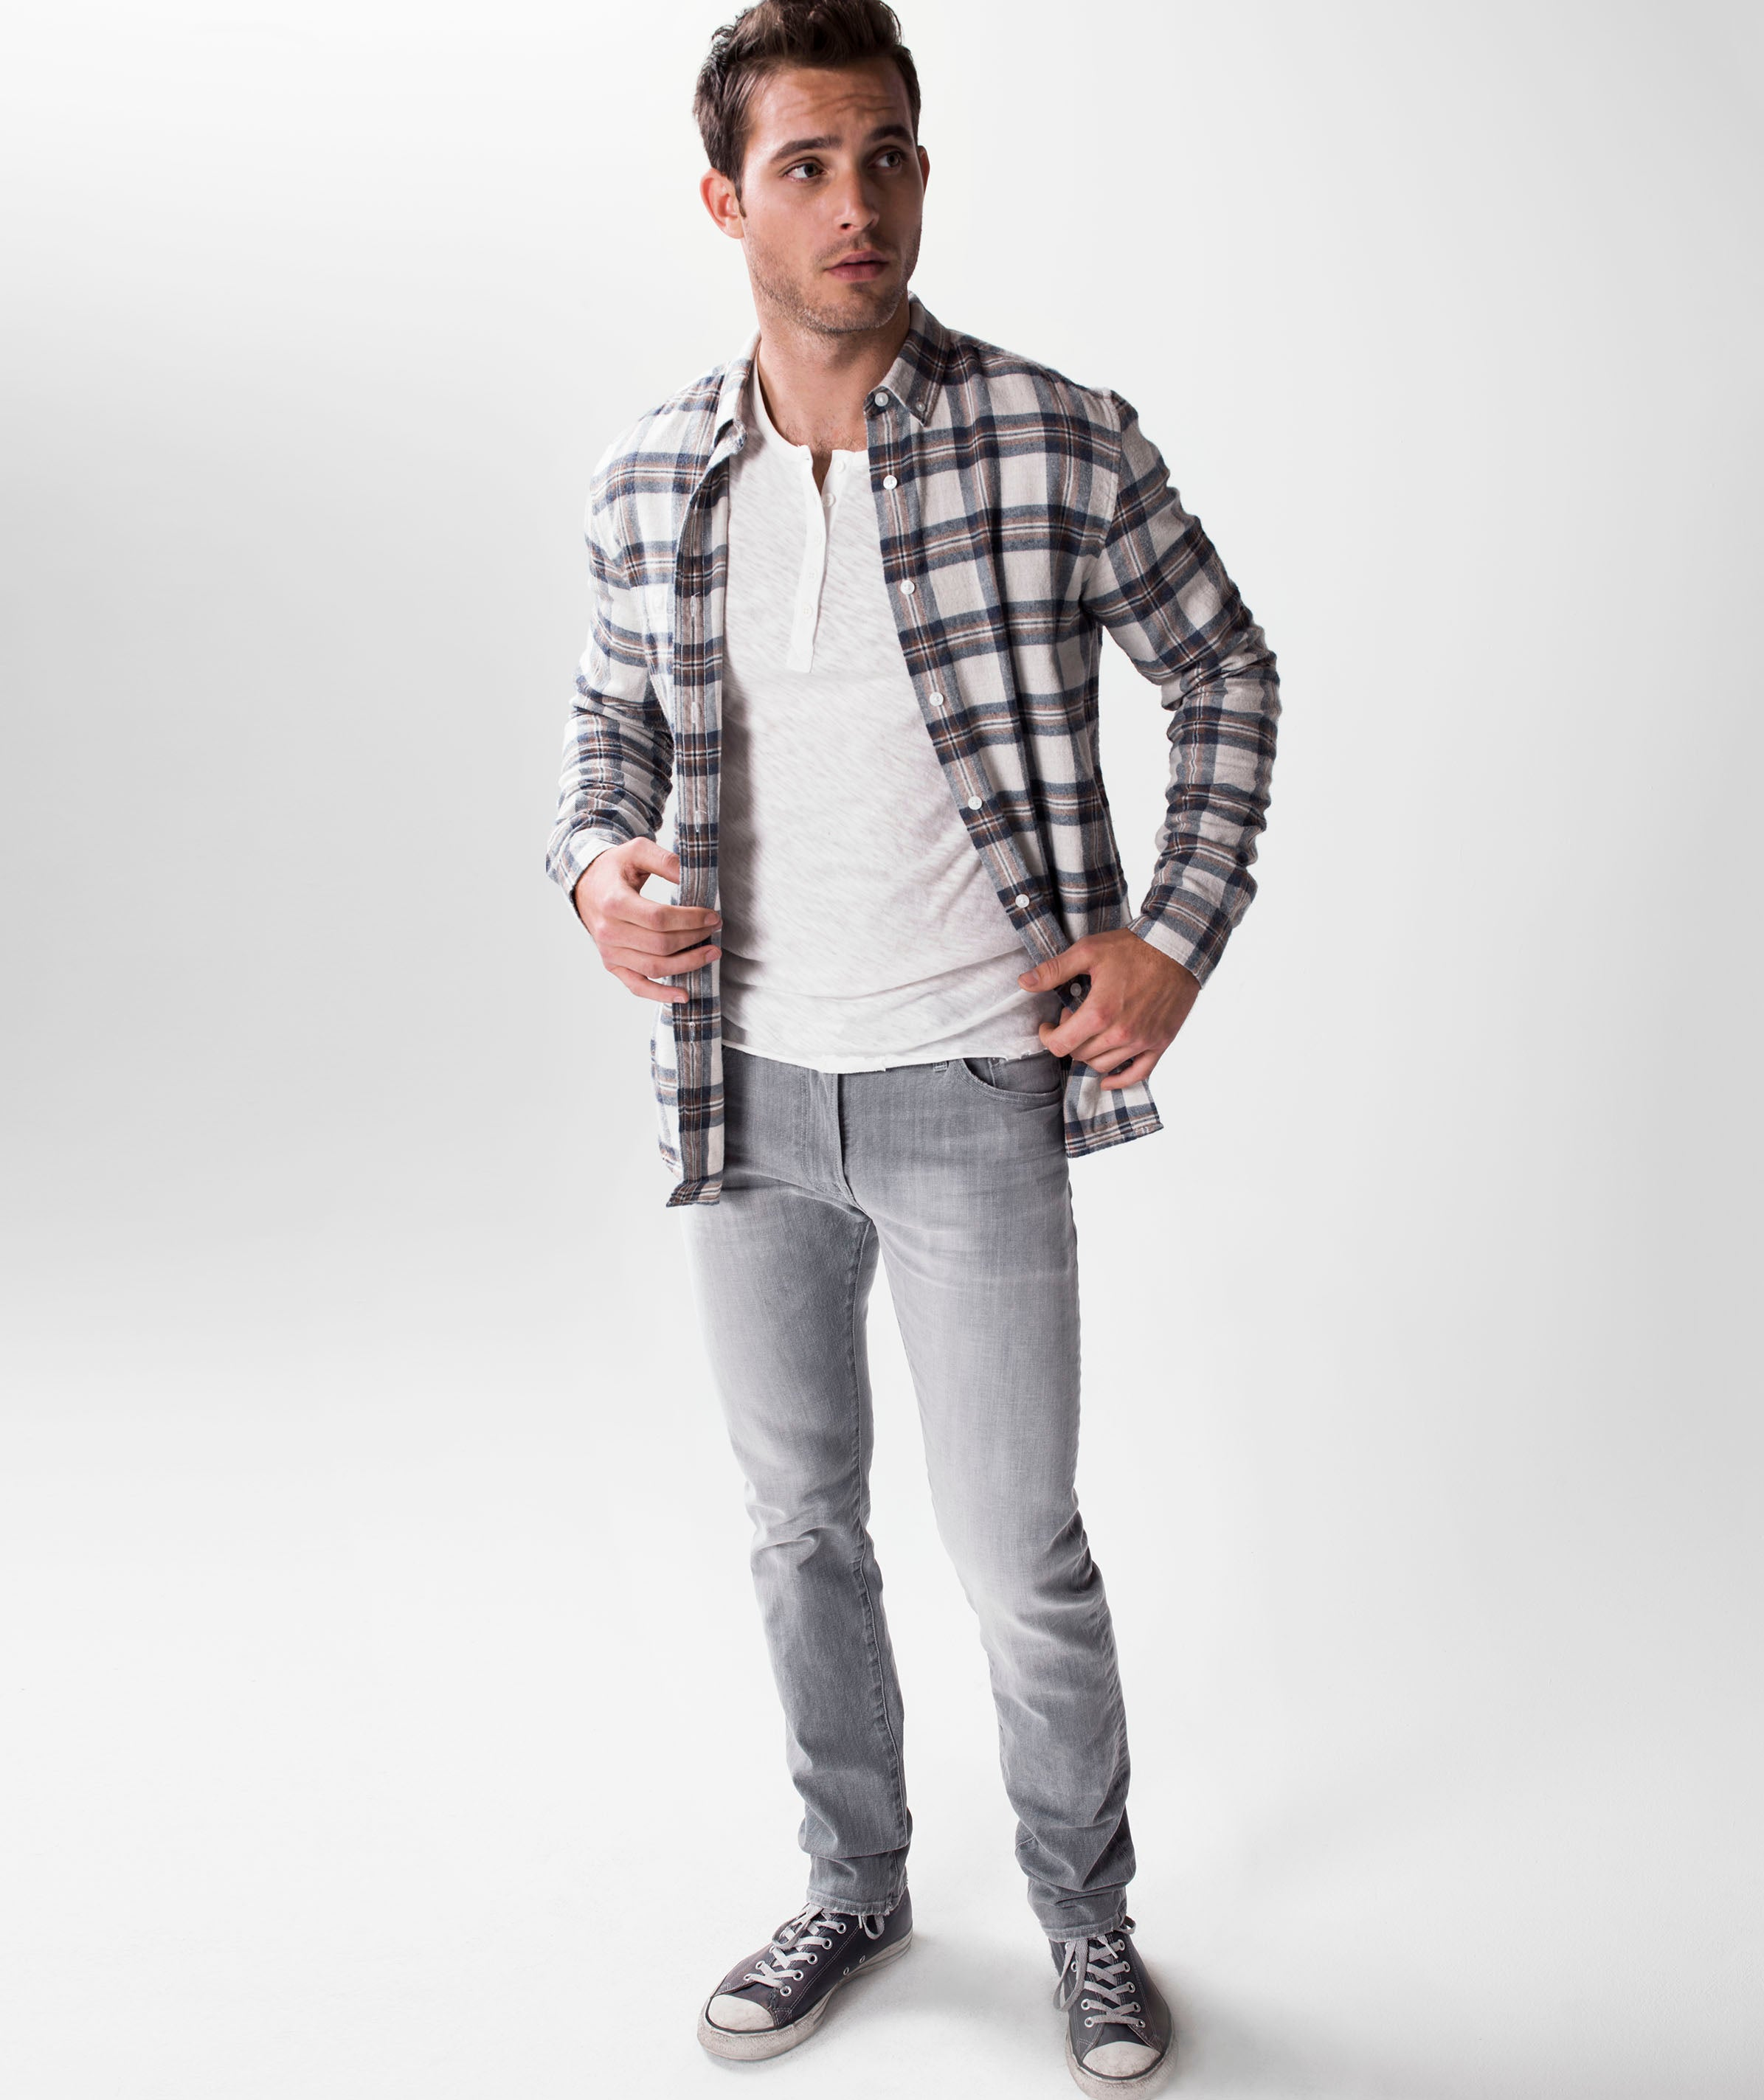 Model wearing S.M.N Studio's Hunter in Owen Men's Jeans with a casual outfit completed by a flannel and henley shirt underneath